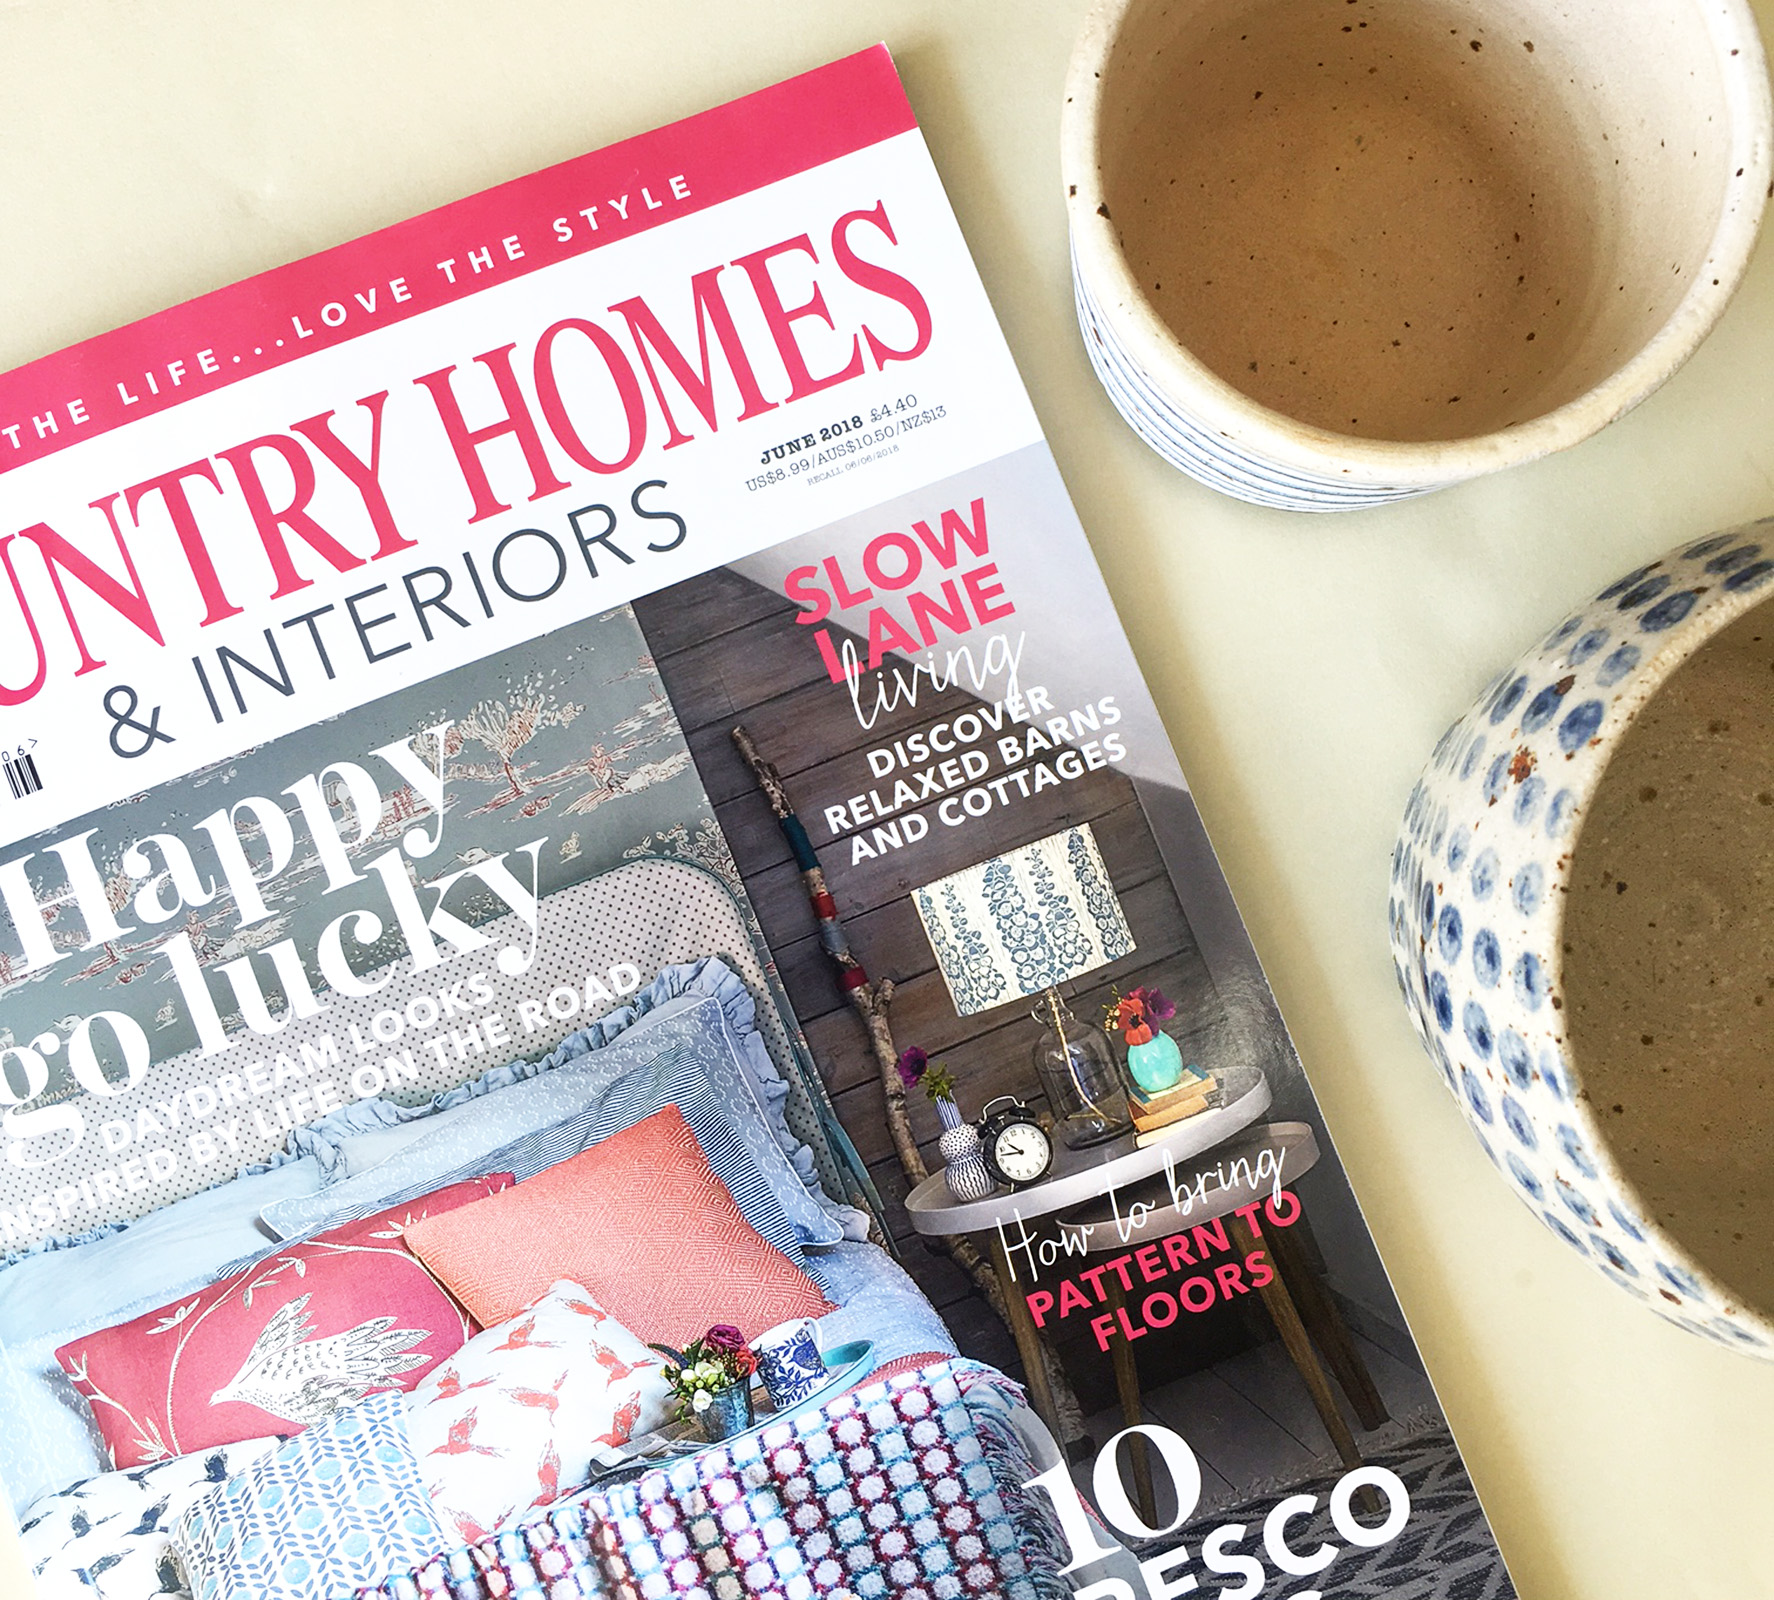 Happy Summertime! My flower pots have been featured in life style magazine  Country Homes & Interiors  June issue 2018. The magazine features the modern country style living and has lots of information about plants and gardening. Thank you very much Holly!   @pollipots   #pollipots   #feature  #countrystyle   #juneissue   #countryinteriors  #interiorsmagazines   #countrysummer    #pots   #planters   #pattern